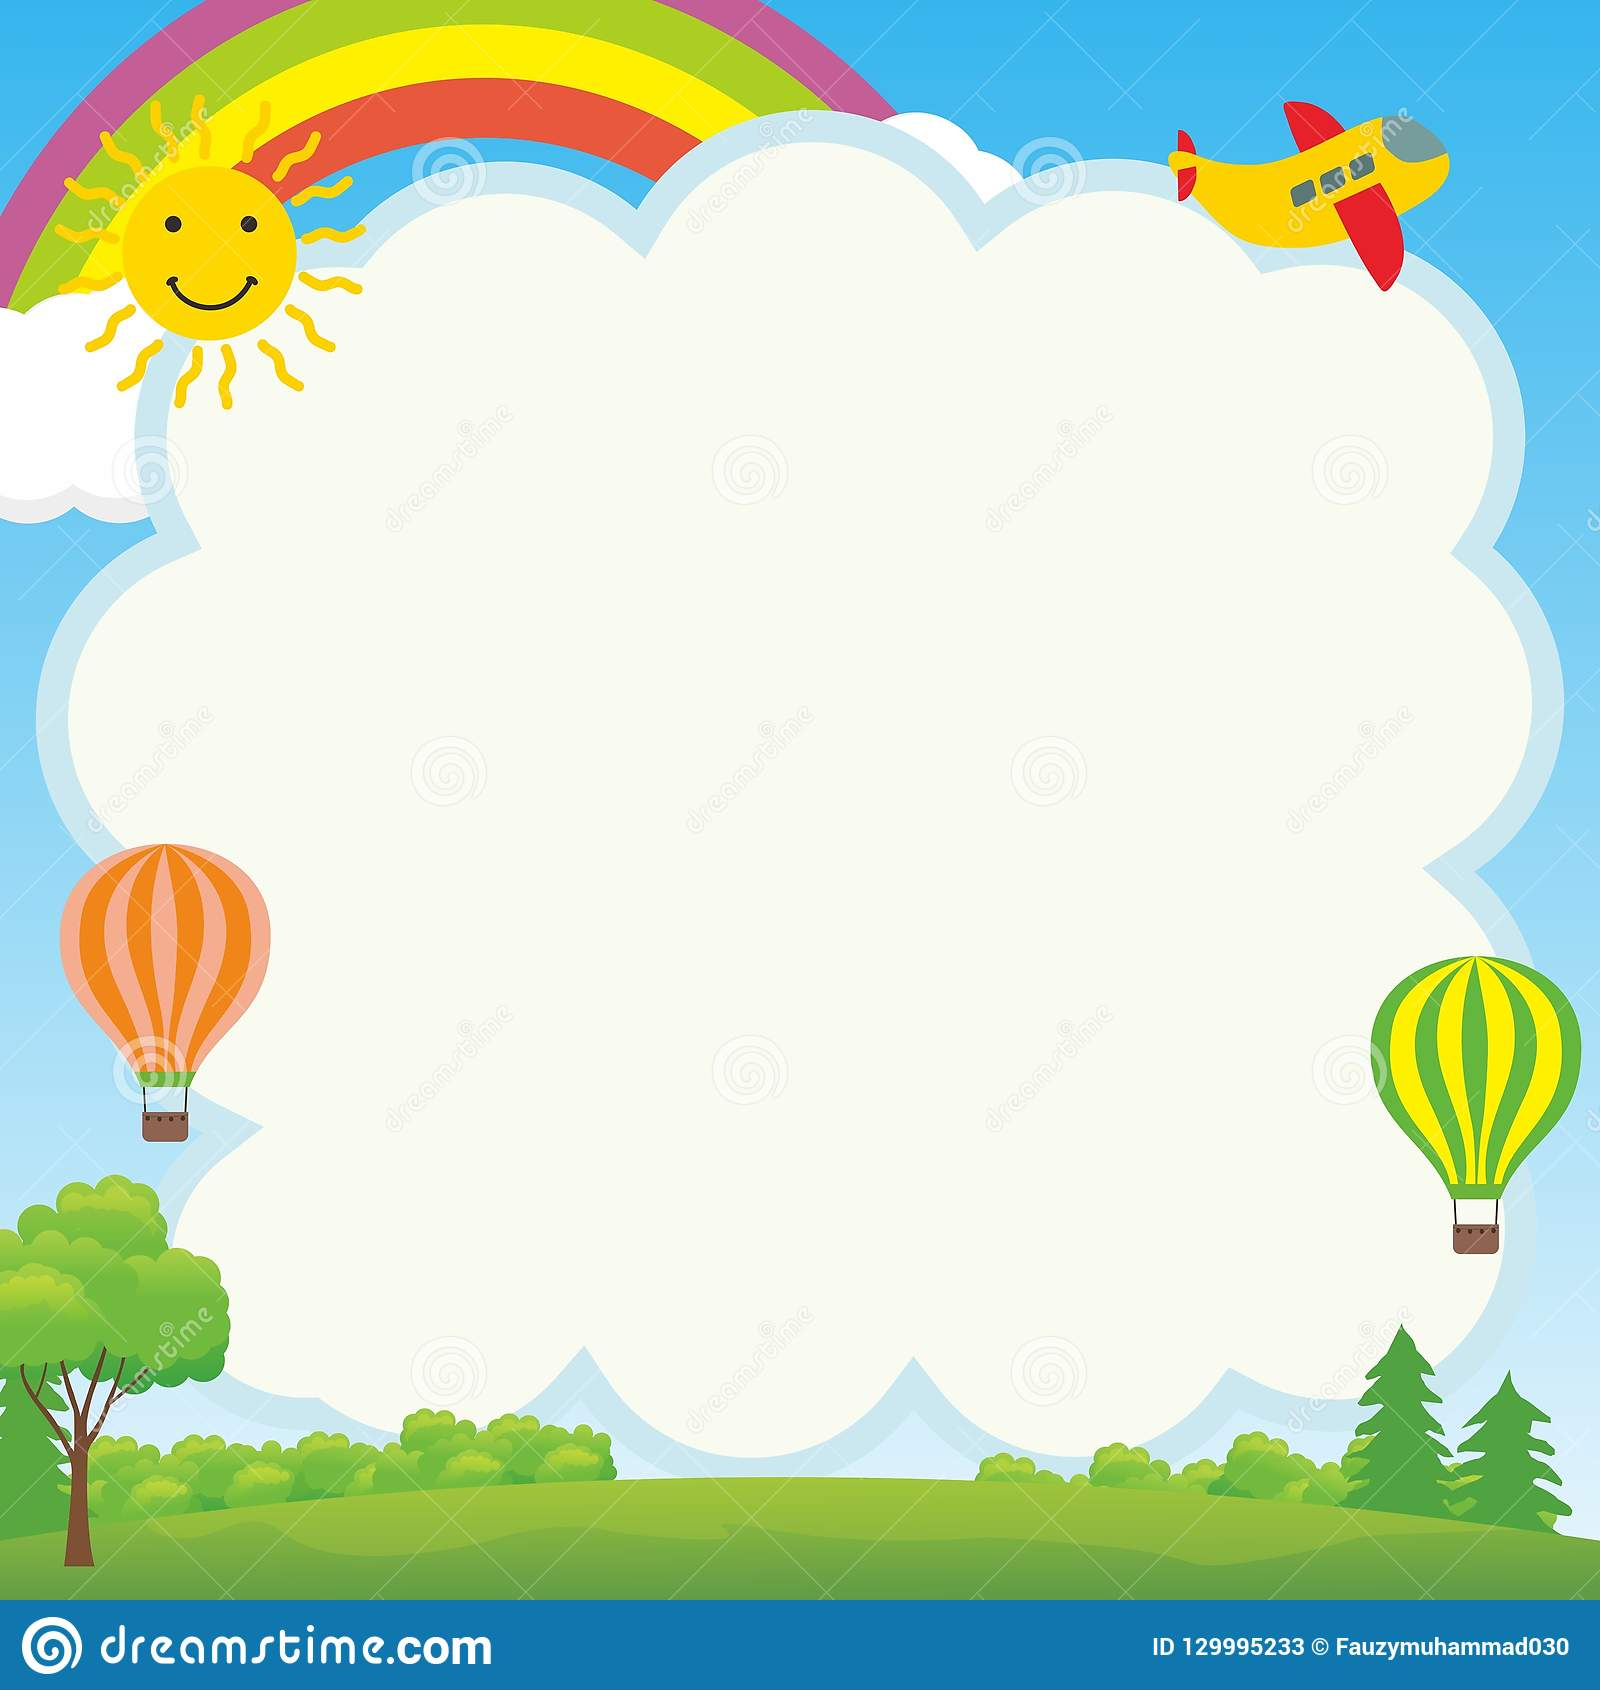 Cute And Funny Frame With Landscape Cartoon Stock Vector ...